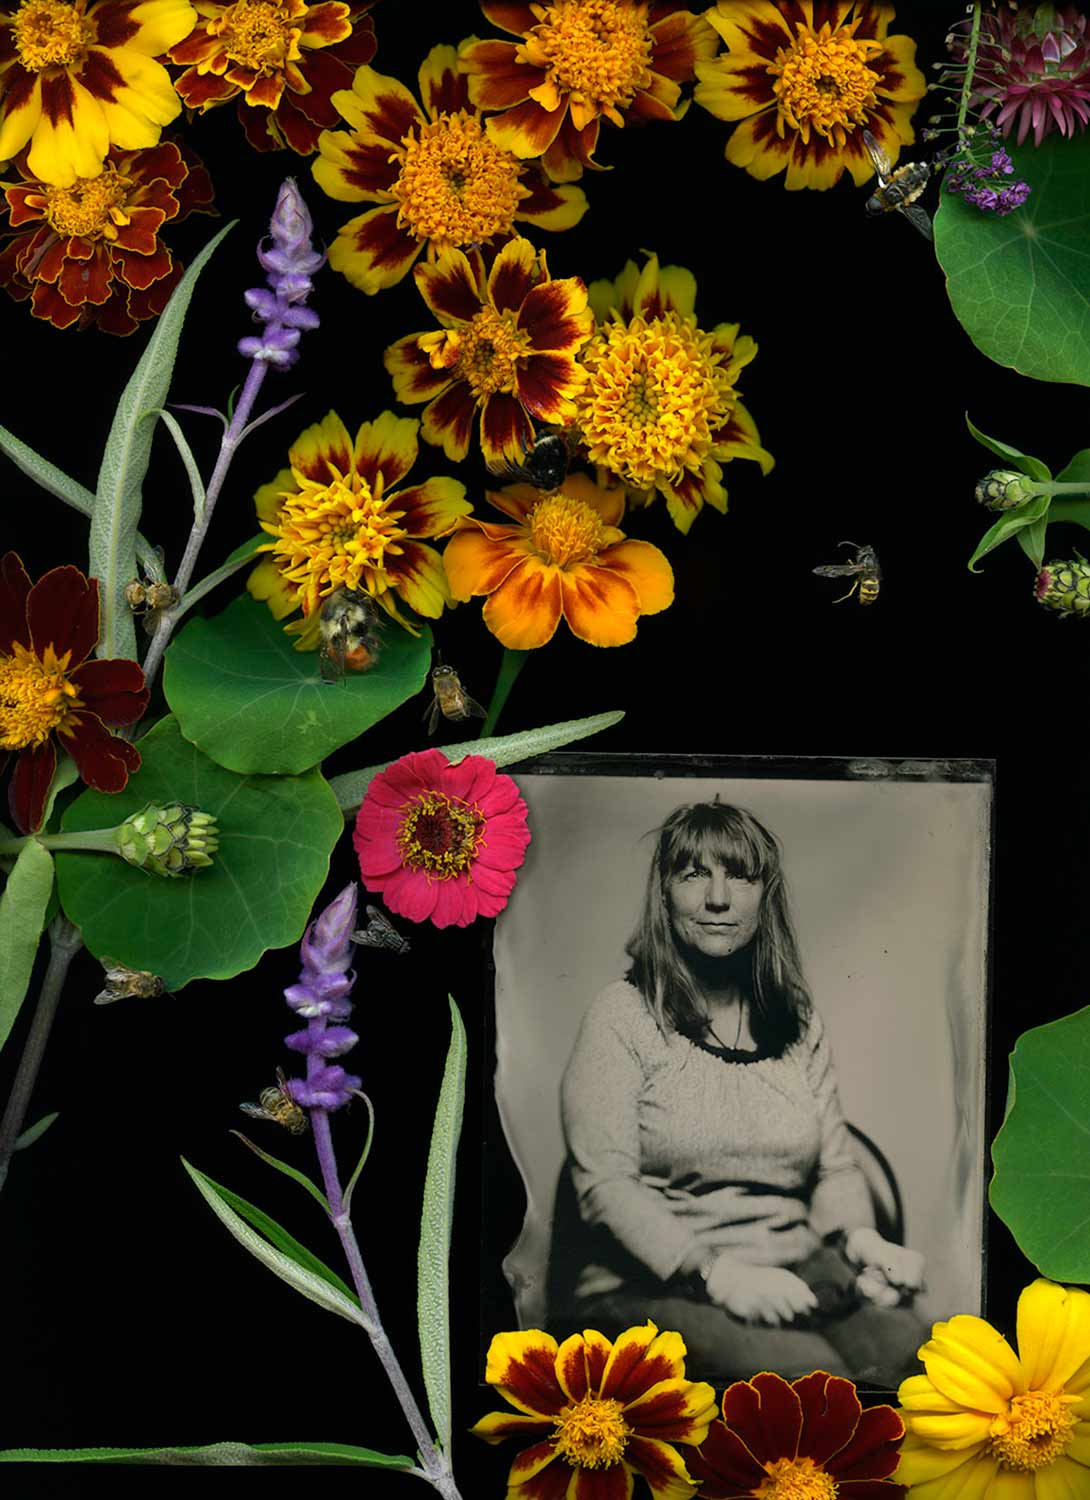 Self-portrait in wet plate collodion and marigolds.